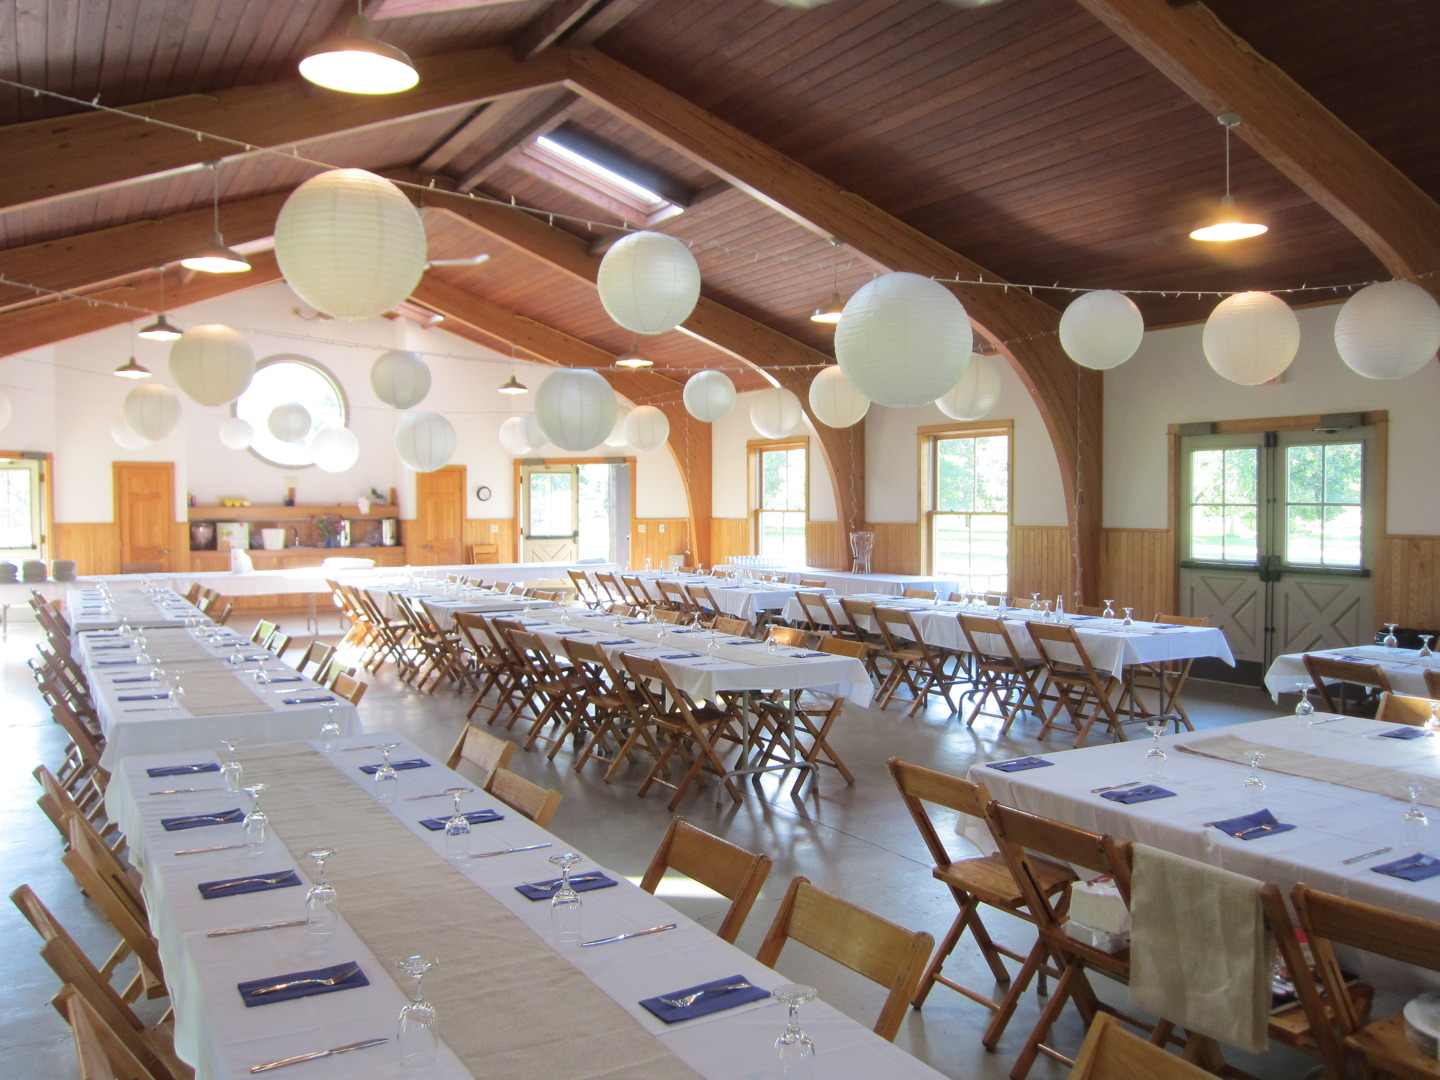 We installed all white christmas lights and hung white paper lanterns for inexpensive,easy yet impactful ceiling decor. Burlap runners and purple coneflowers.